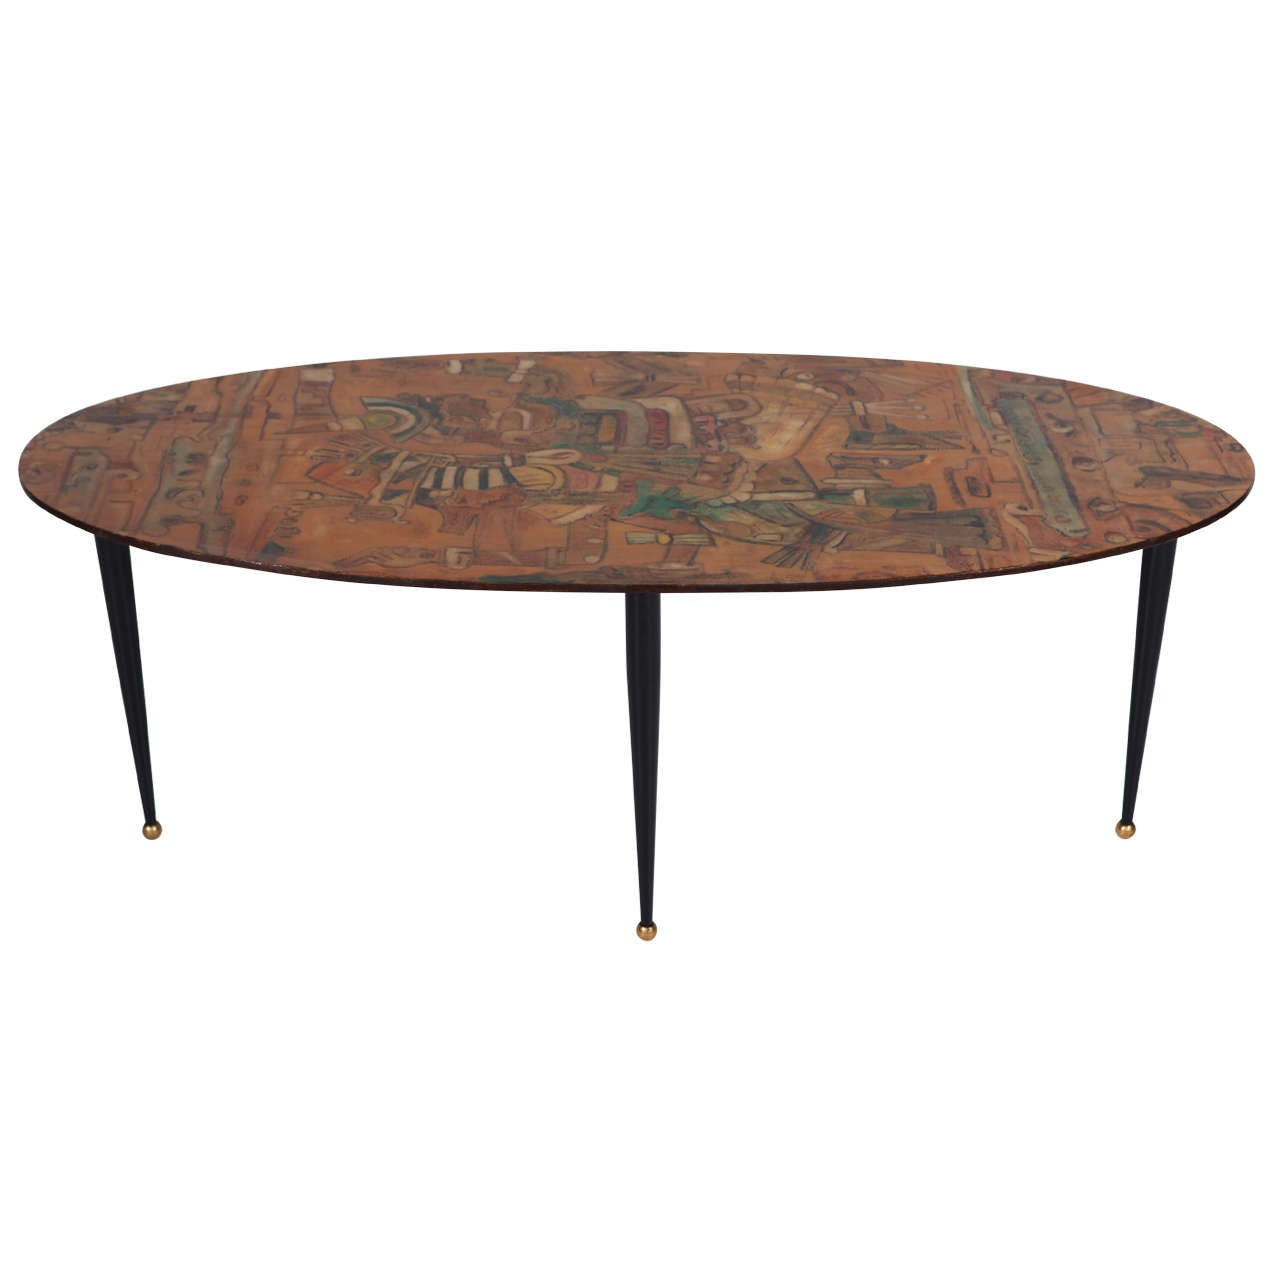 Amazing italian 1950s modernist coffee table at 1stdibs for Amazing coffee tables